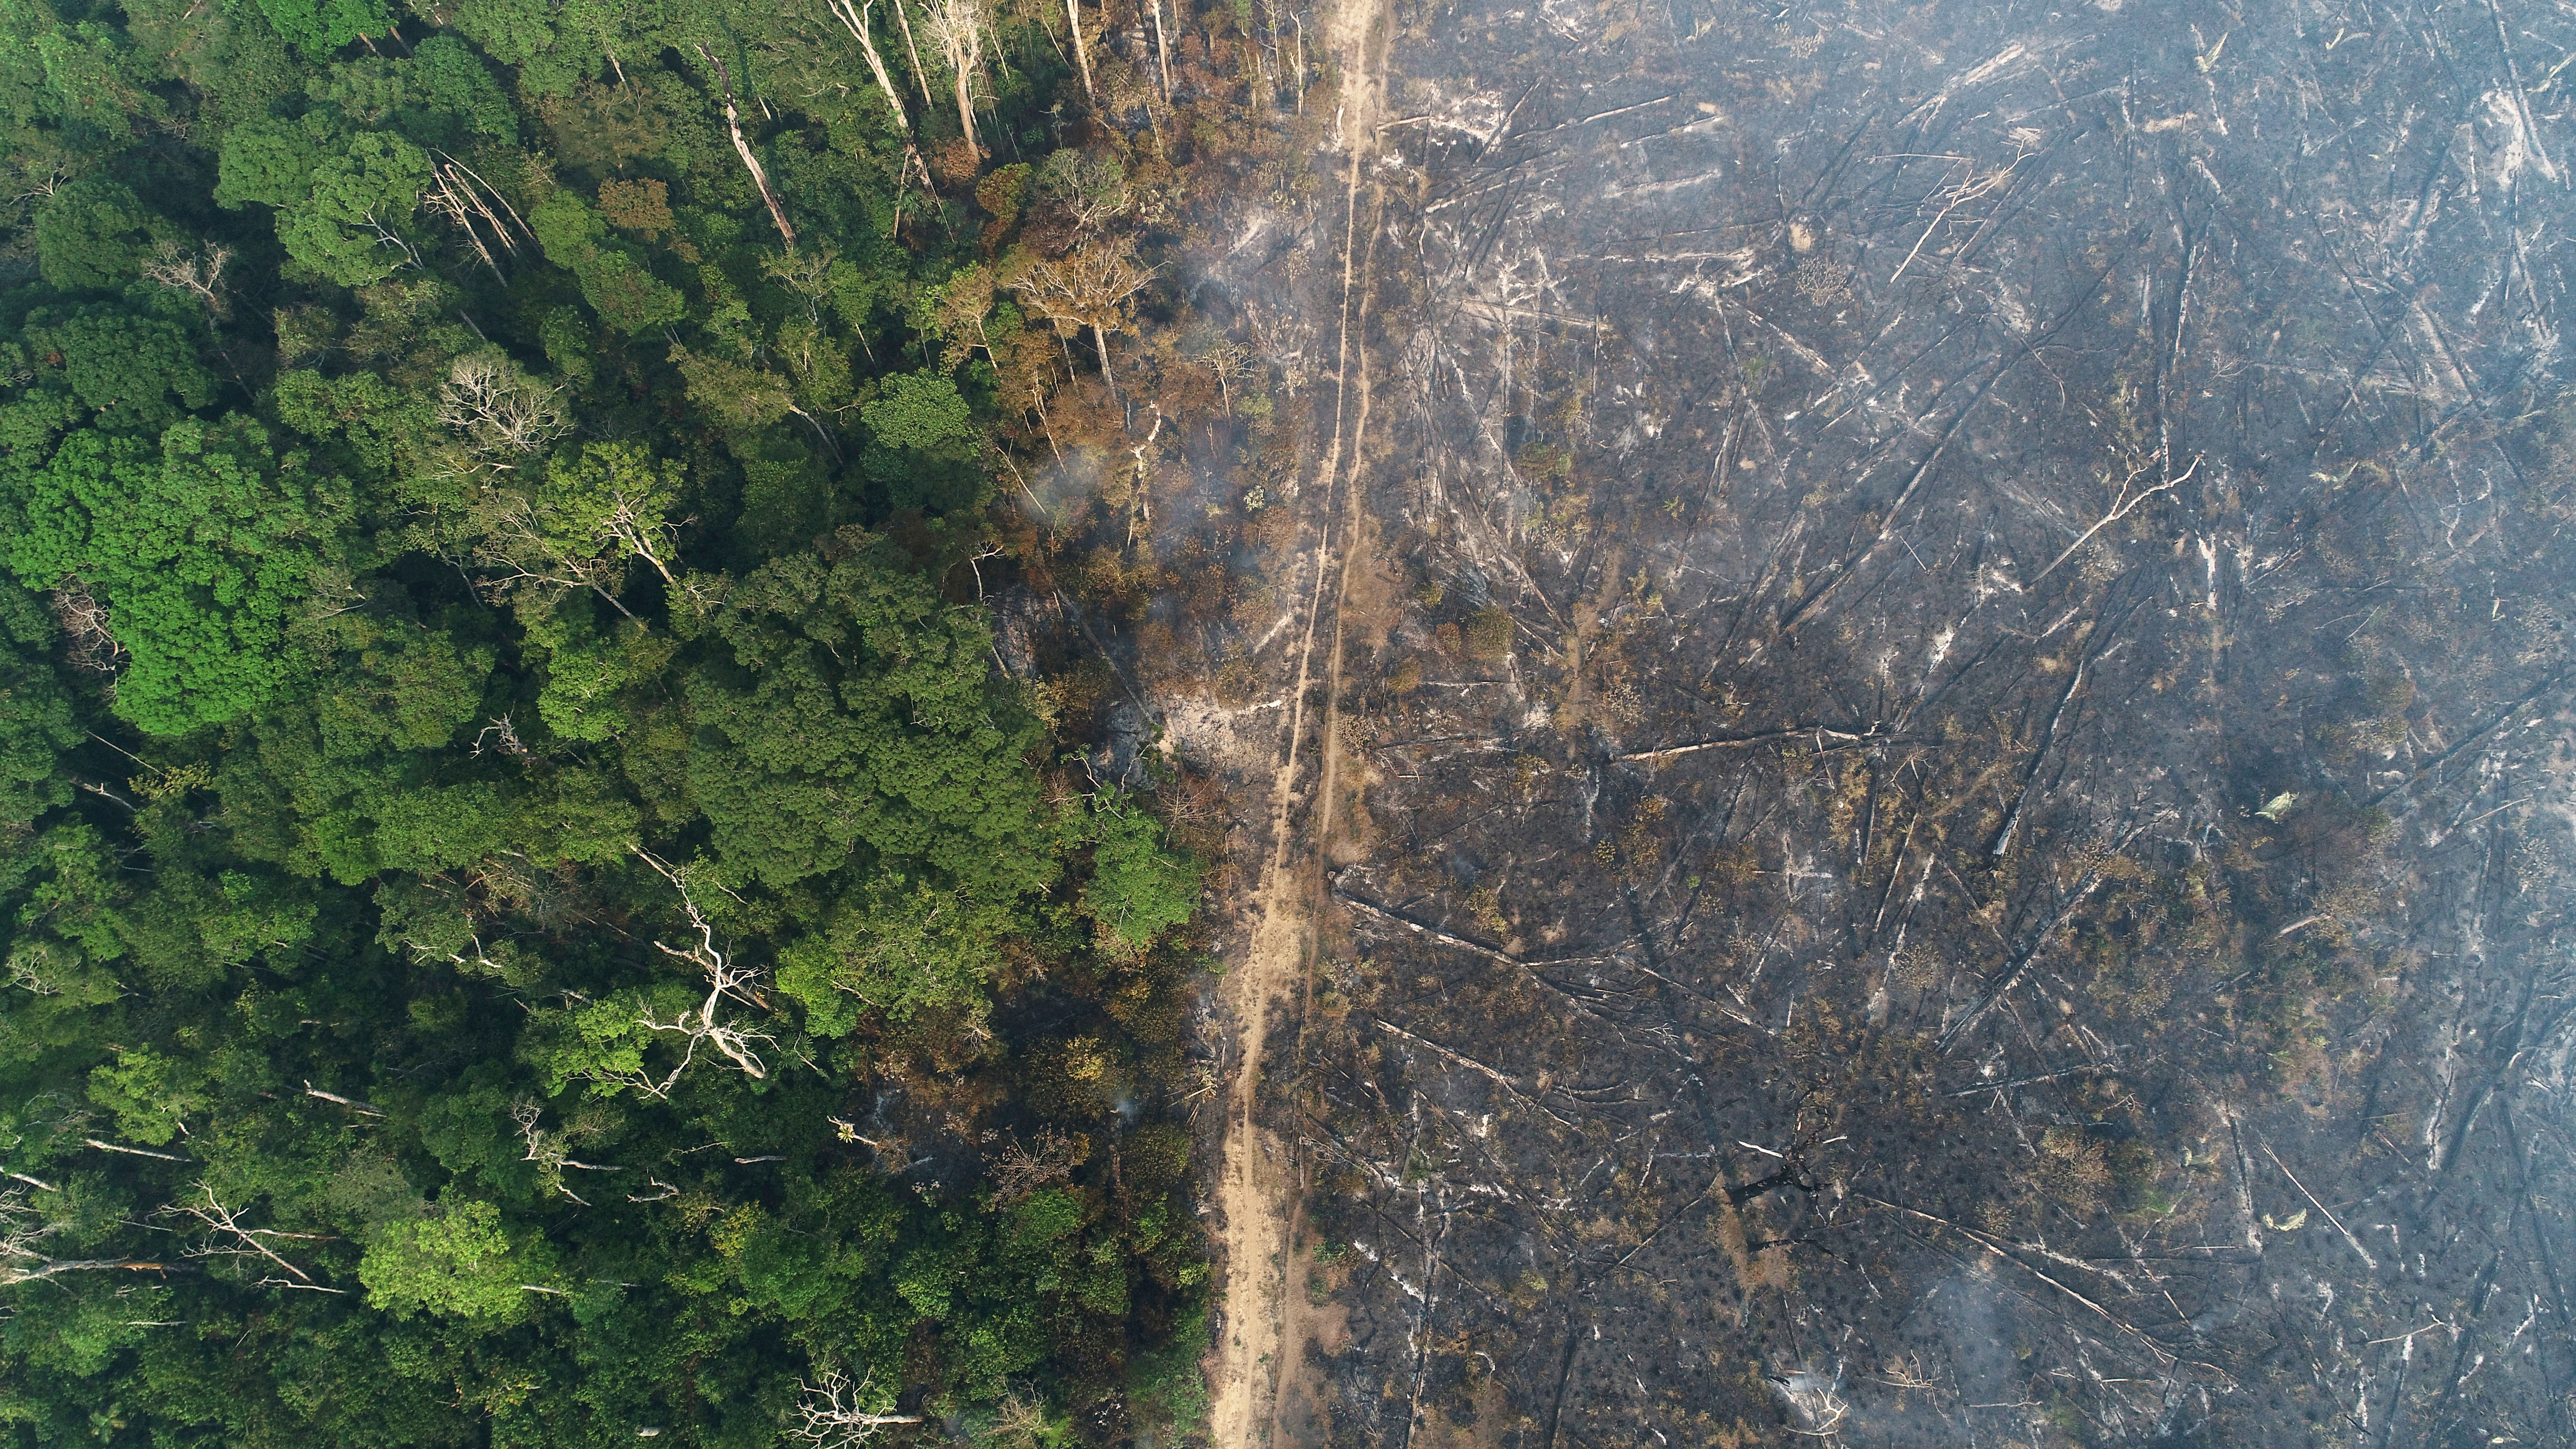 General view of a tract of the Amazon jungle which burns as it is cleared by loggers and farmers near Apui, Amazonas State, Brazil August 11, 2020. Picture taken with a drone. REUTERS/Ueslei Marcelino/File Photo